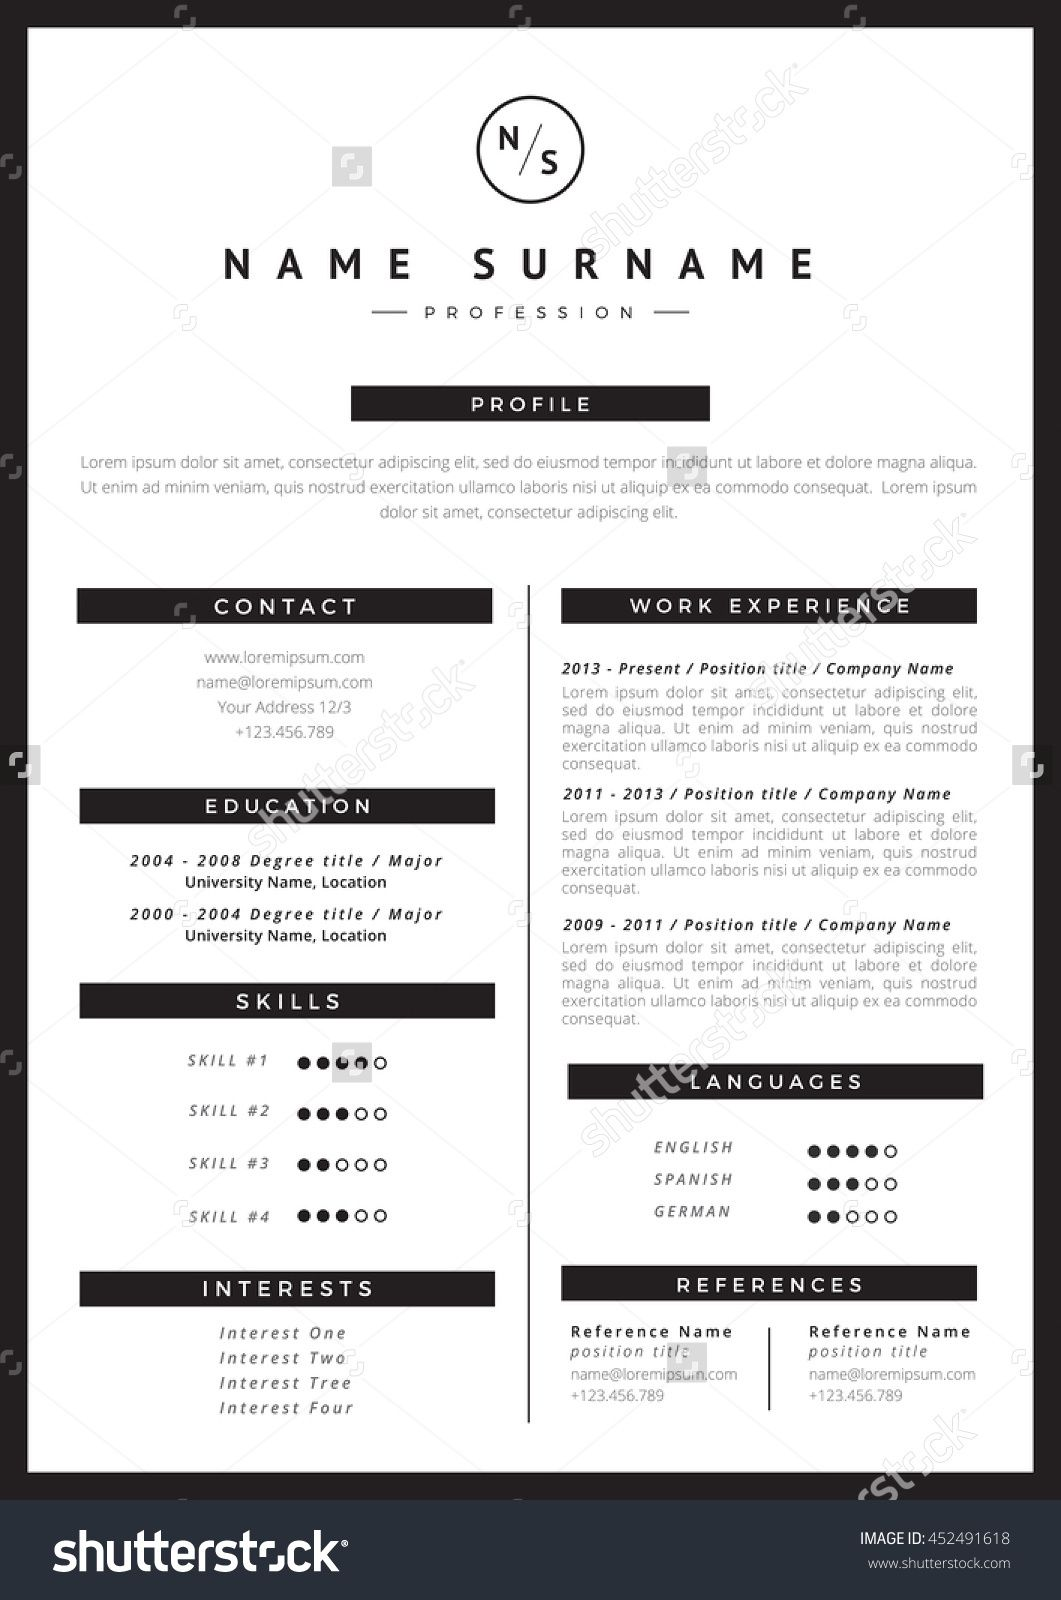 cool, simple Resume template, Templates, Company names